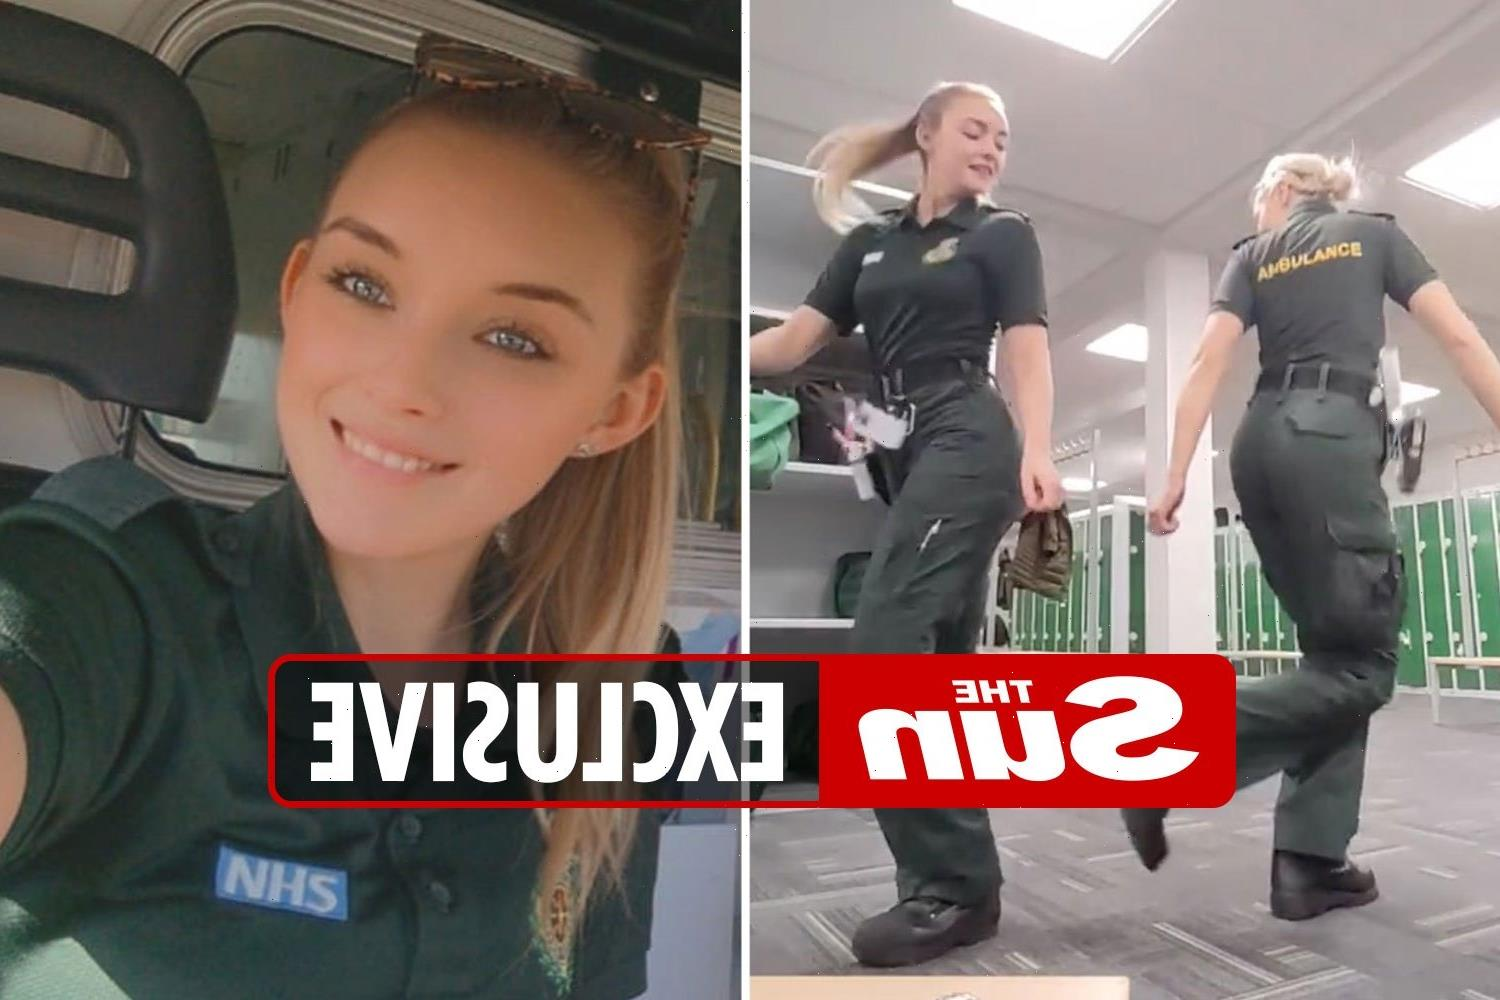 Mums of TikTok paramedics hit back at 'stupid' critics as dance videos are 'funny' and they 'save a lot of lives'